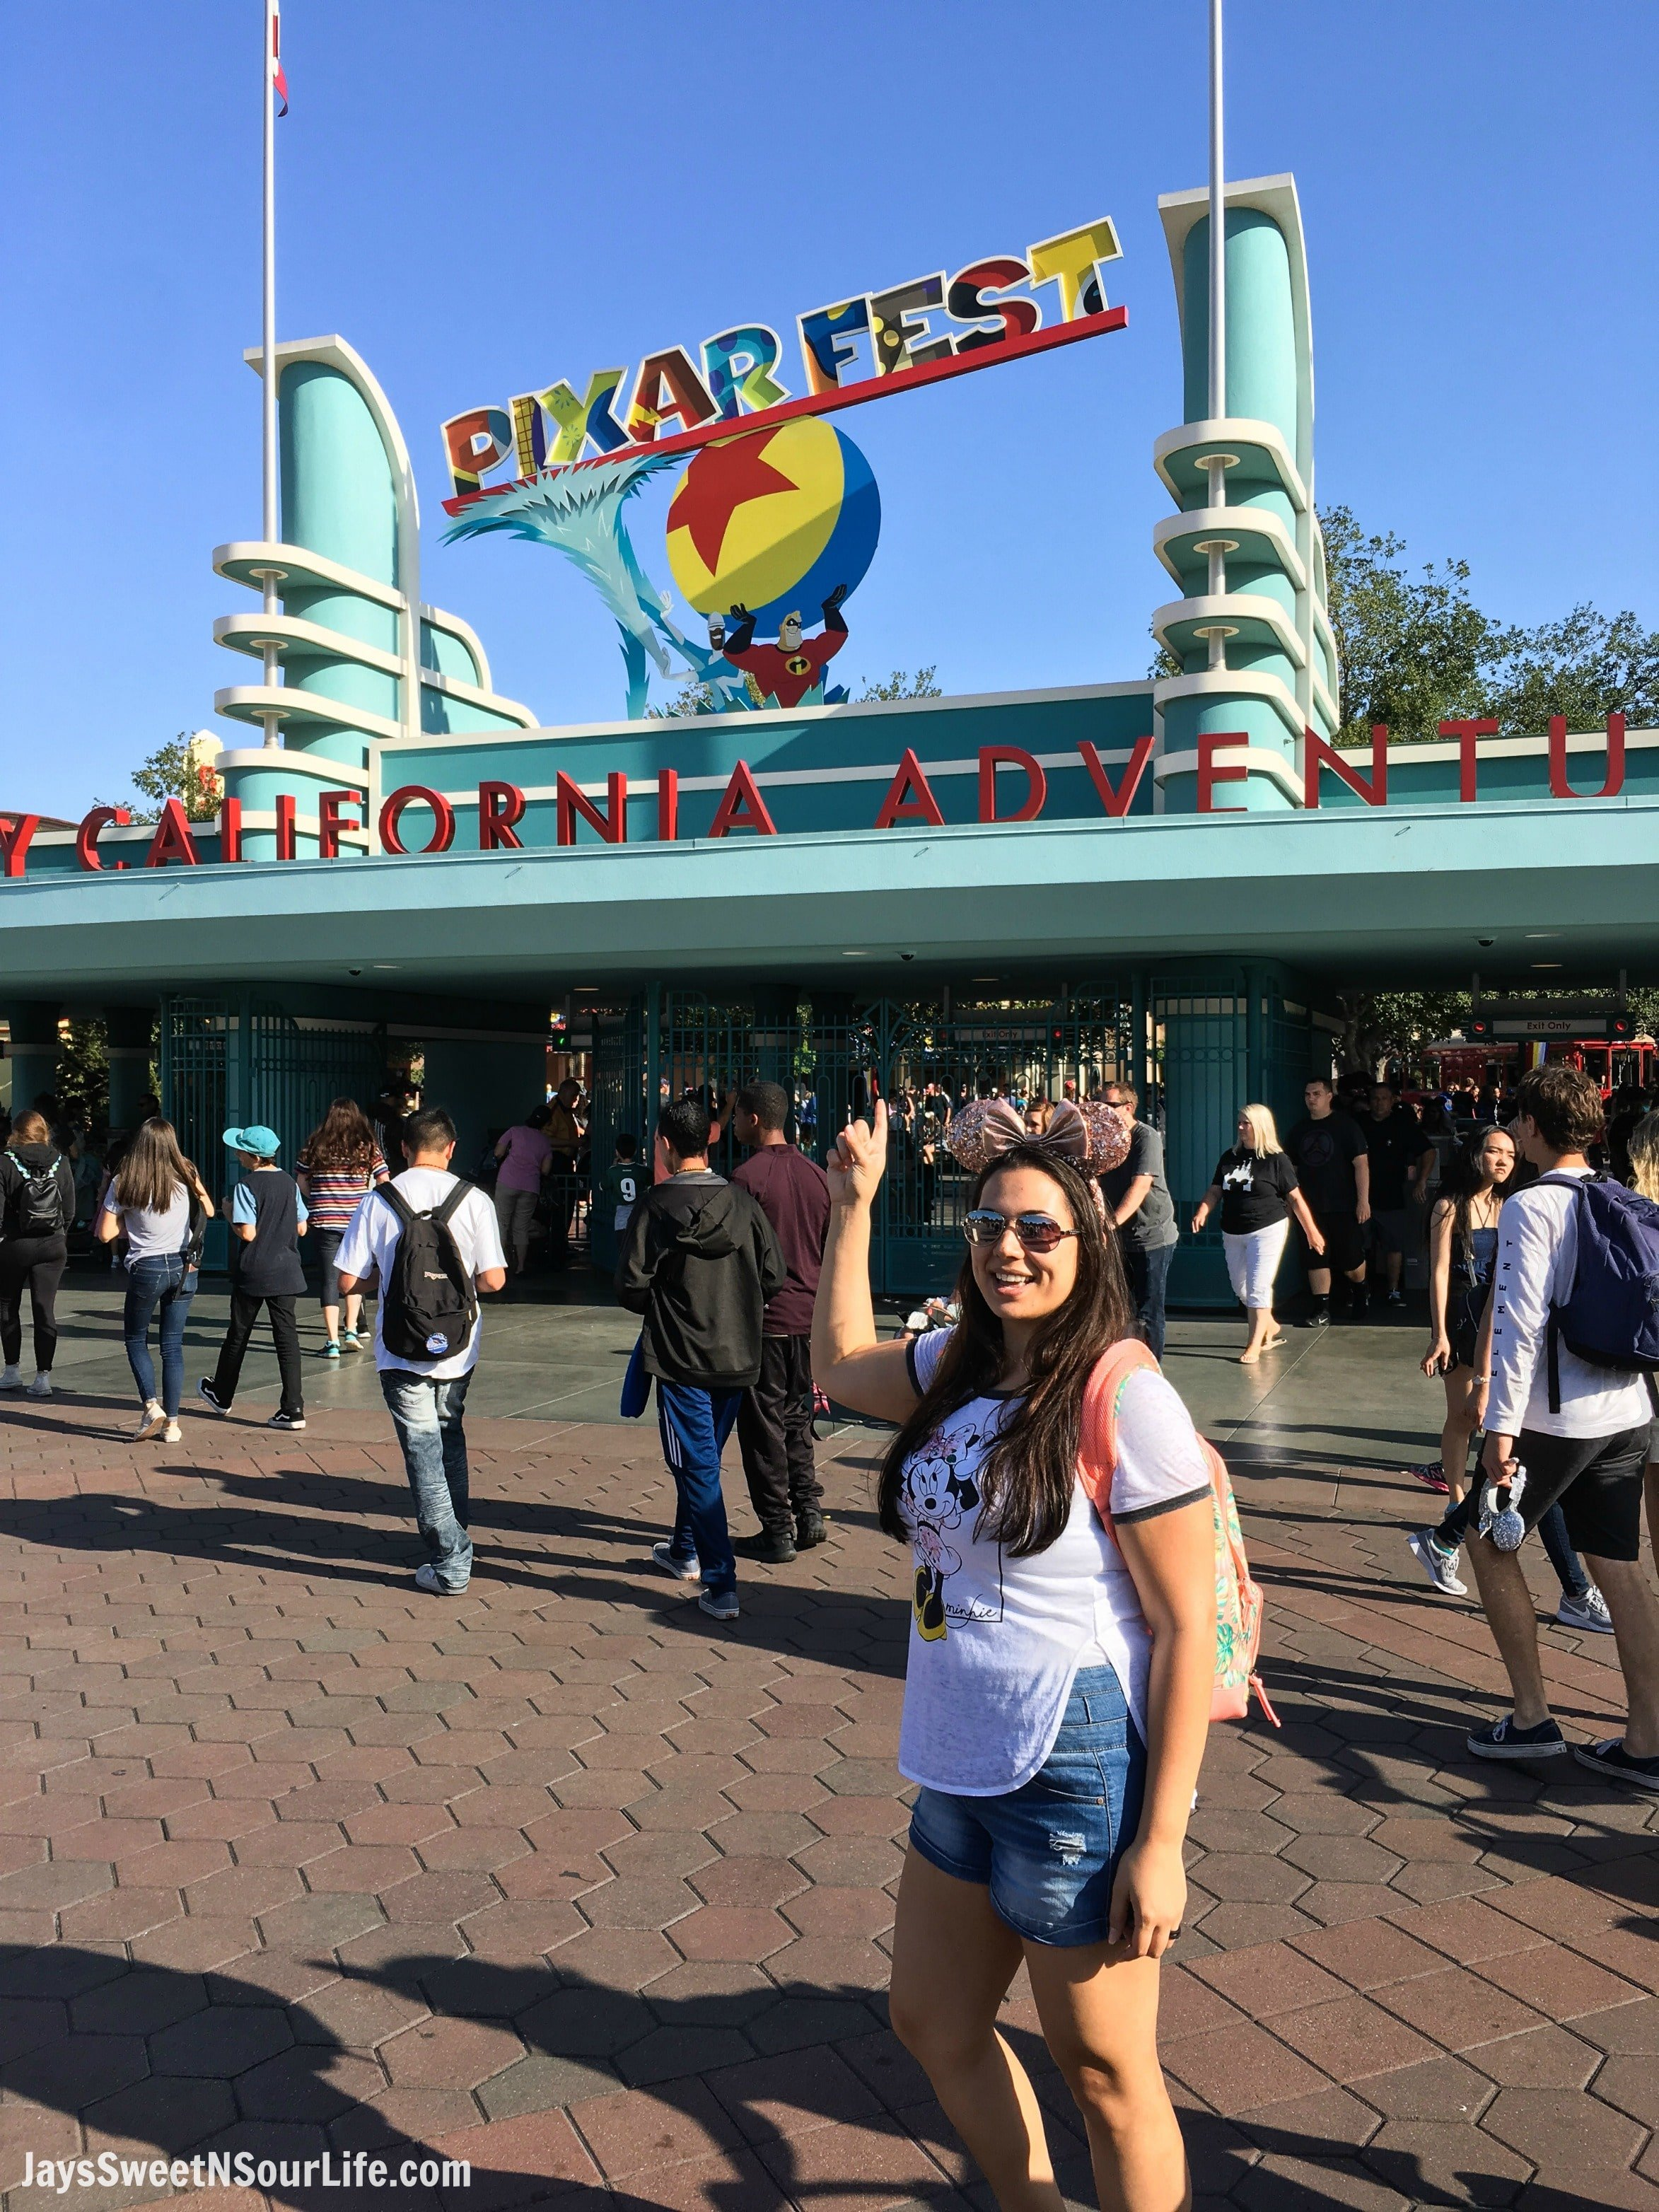 Pixar Fest at Disneyland Filipino Woman Pointing To Sign. Pixar Fest at Disneyland runs from April 13 through September 3rd.